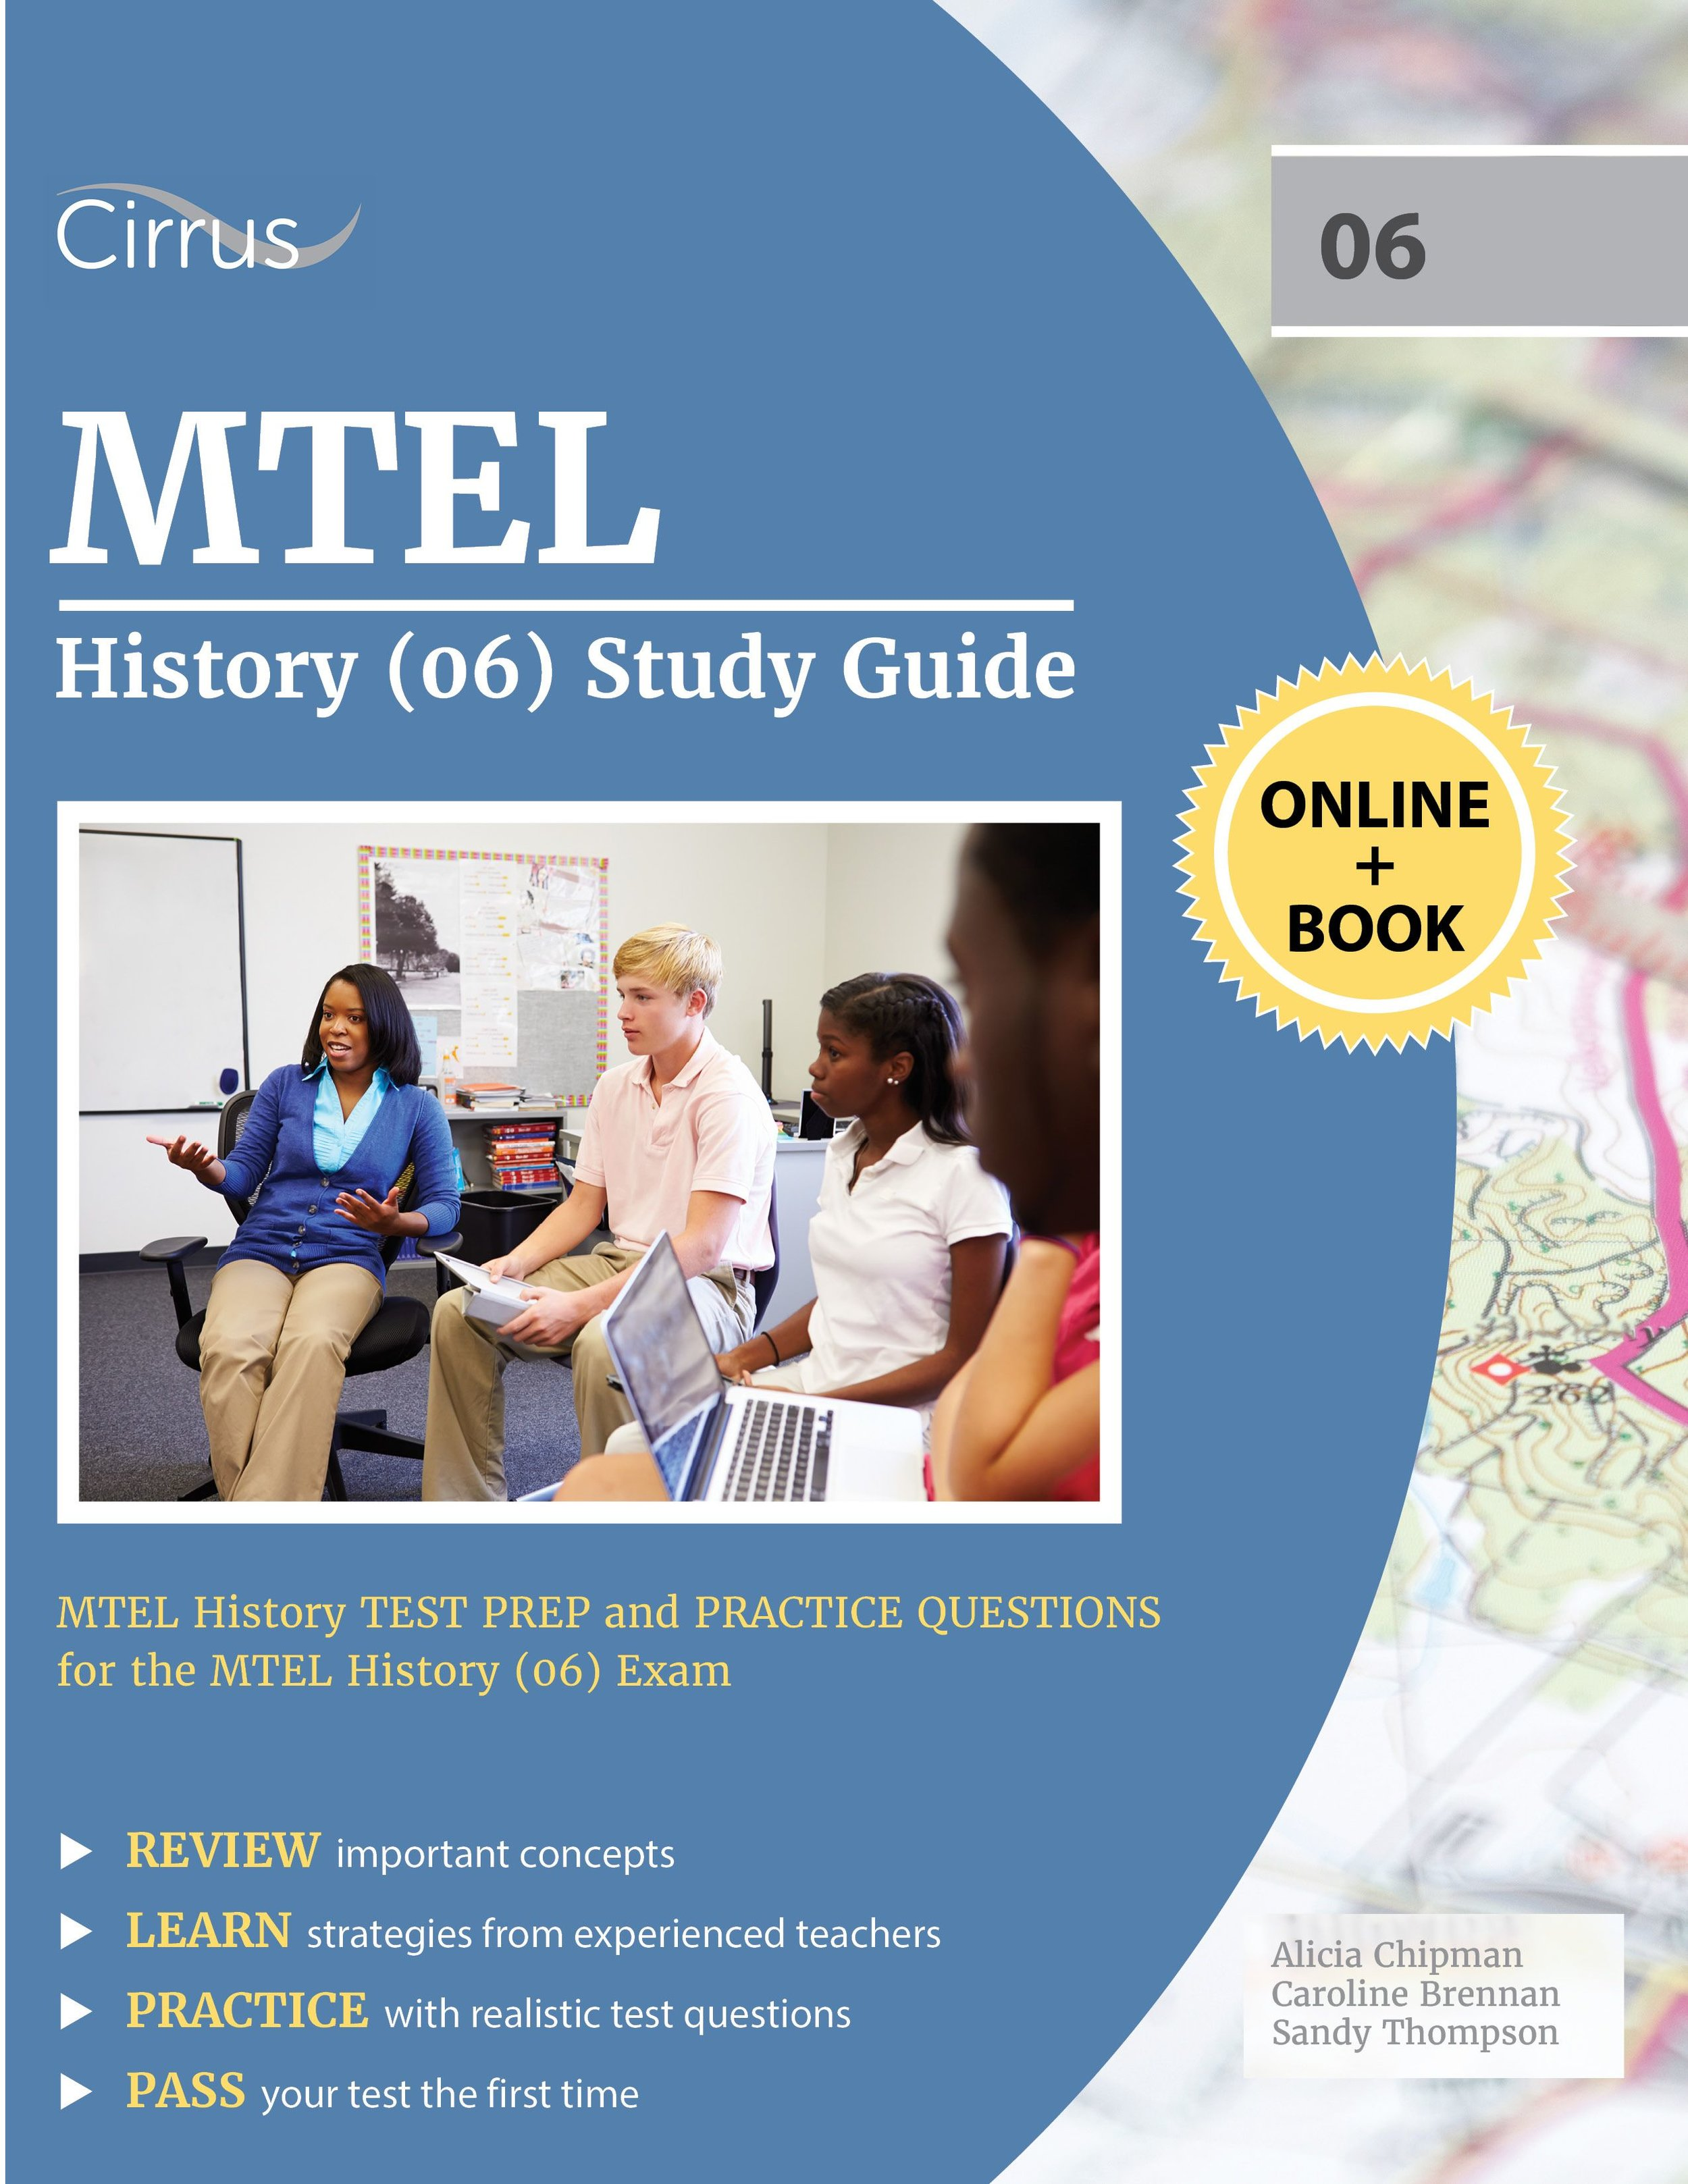 MTEL History 06 Study Guide Test Prep and Practice Questions